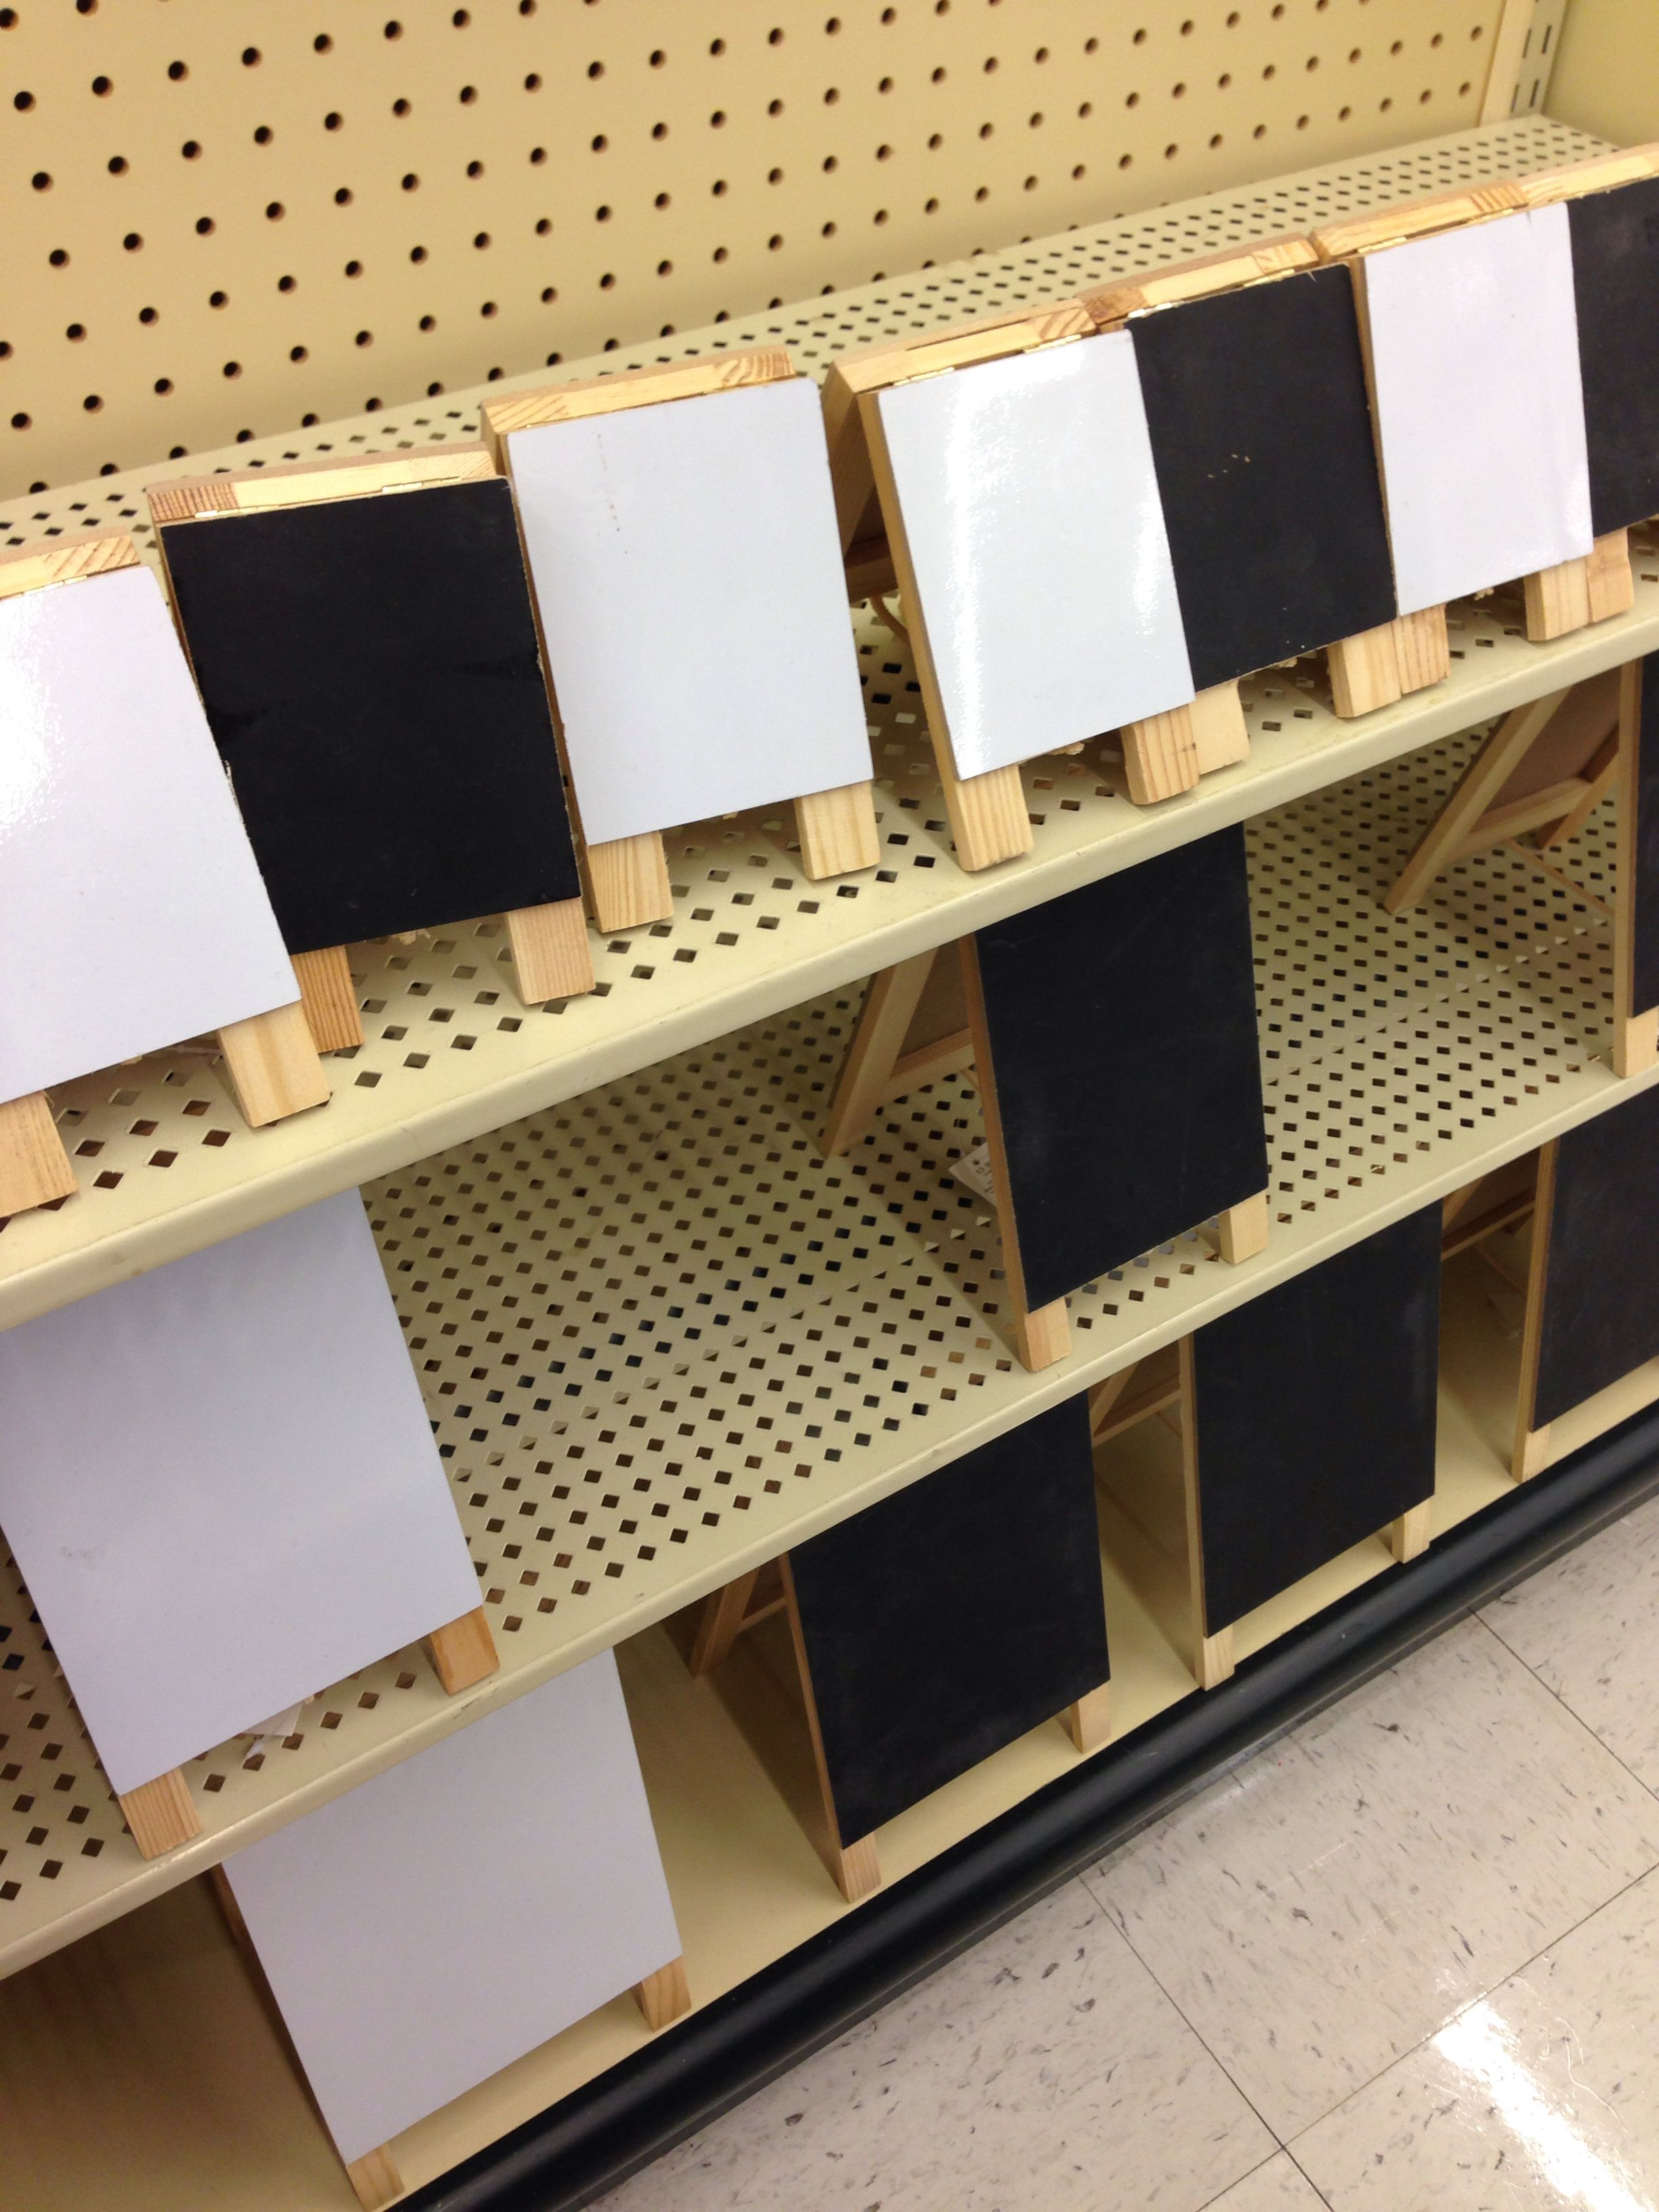 Hobby Lobby Small Easels Chalkboard On One Side Dry Erase Board On The Other Several Different Sizes Art Themed Party Dry Erase Dry Erase Board